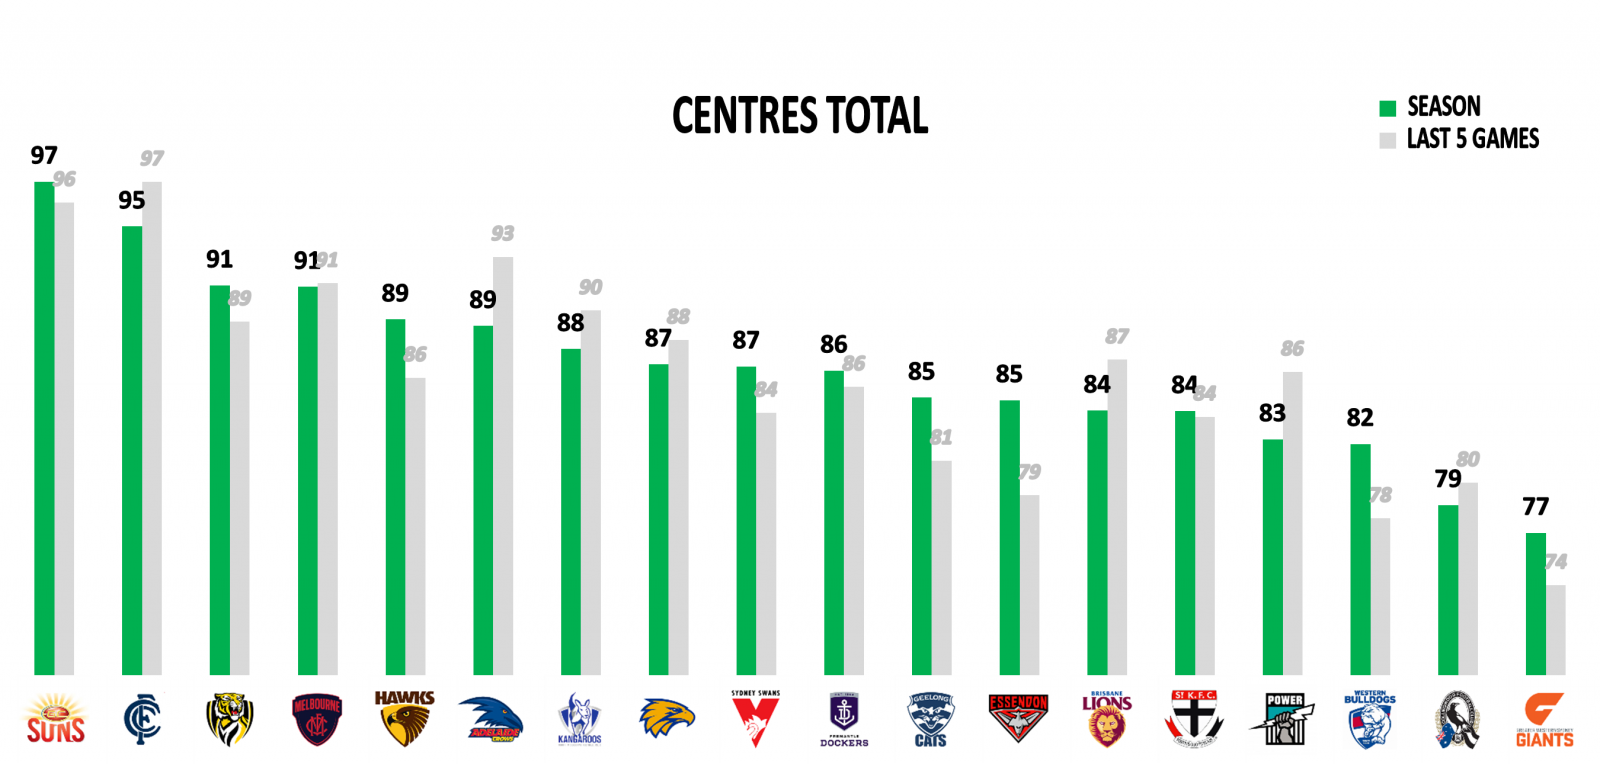 Centres points